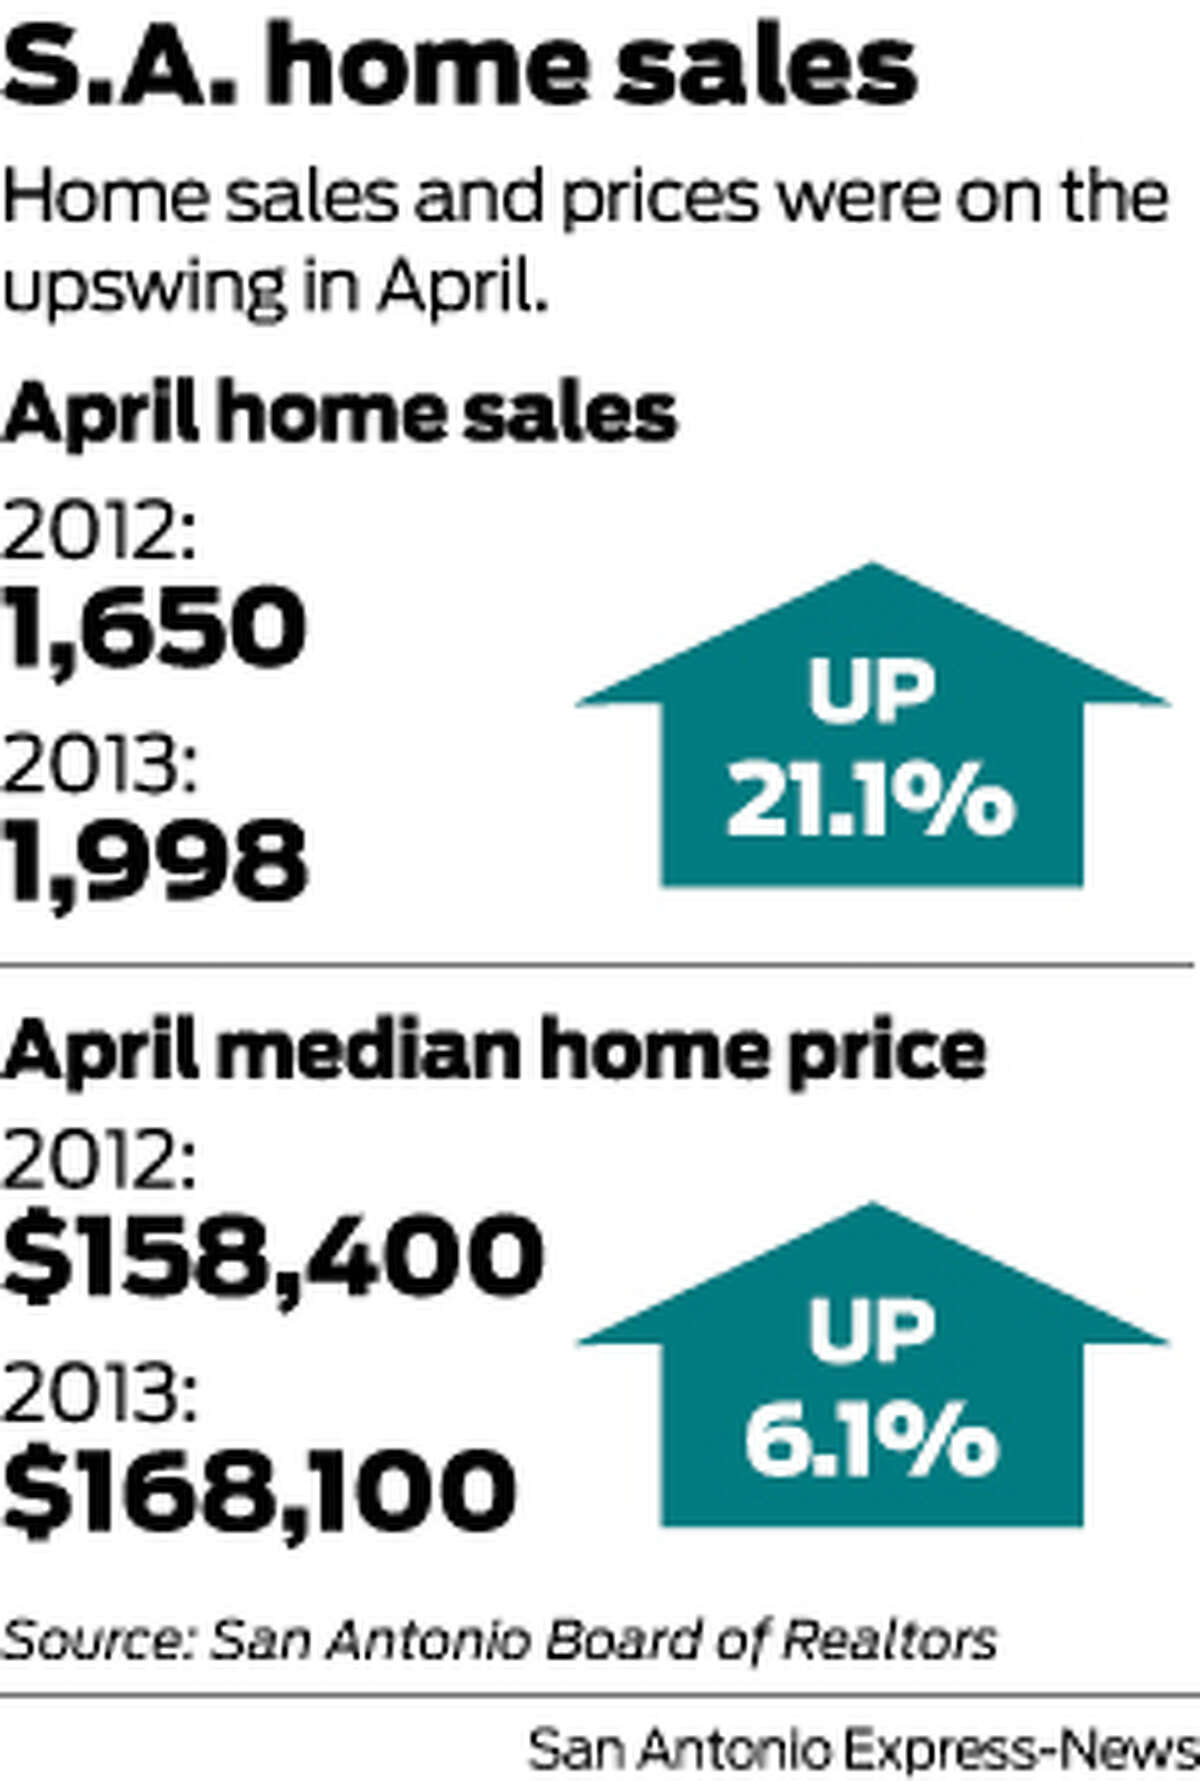 Home sales and prices were on the upswing in April.